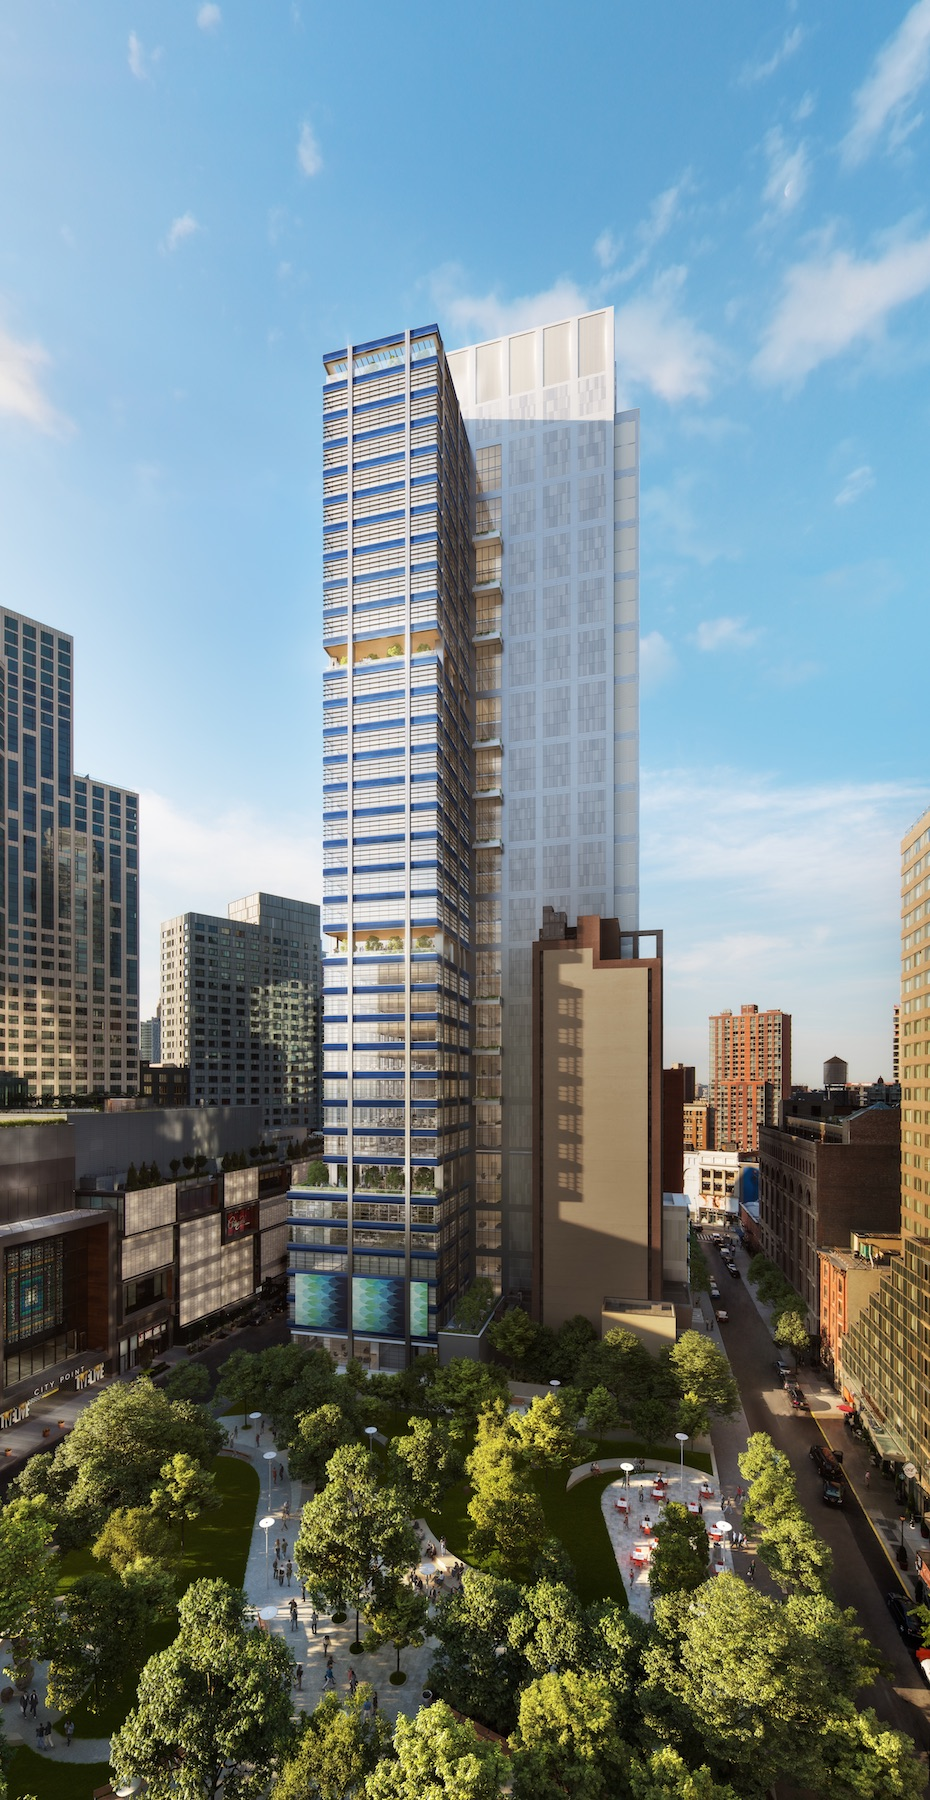 Downtown Brooklyn S 495 Foot Skyscraper Will Have Its Own